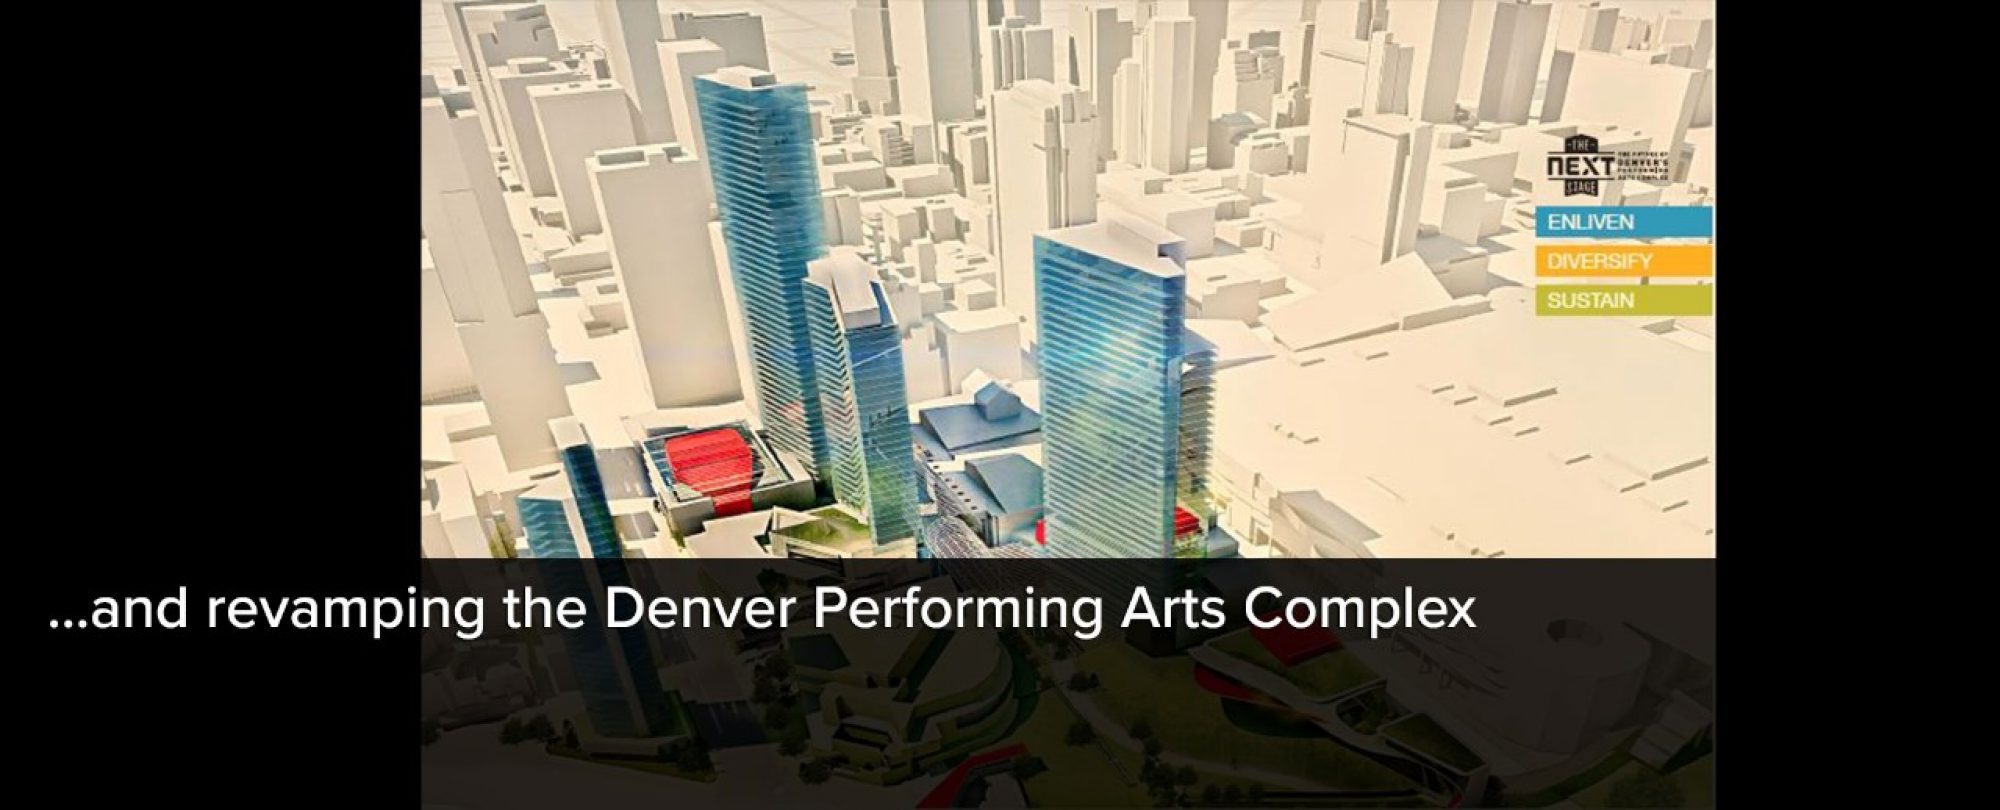 Digital rendering concept of new Denver Performing Arts Complex. Denver also plans to revamp the Denver Performing Arts Complex